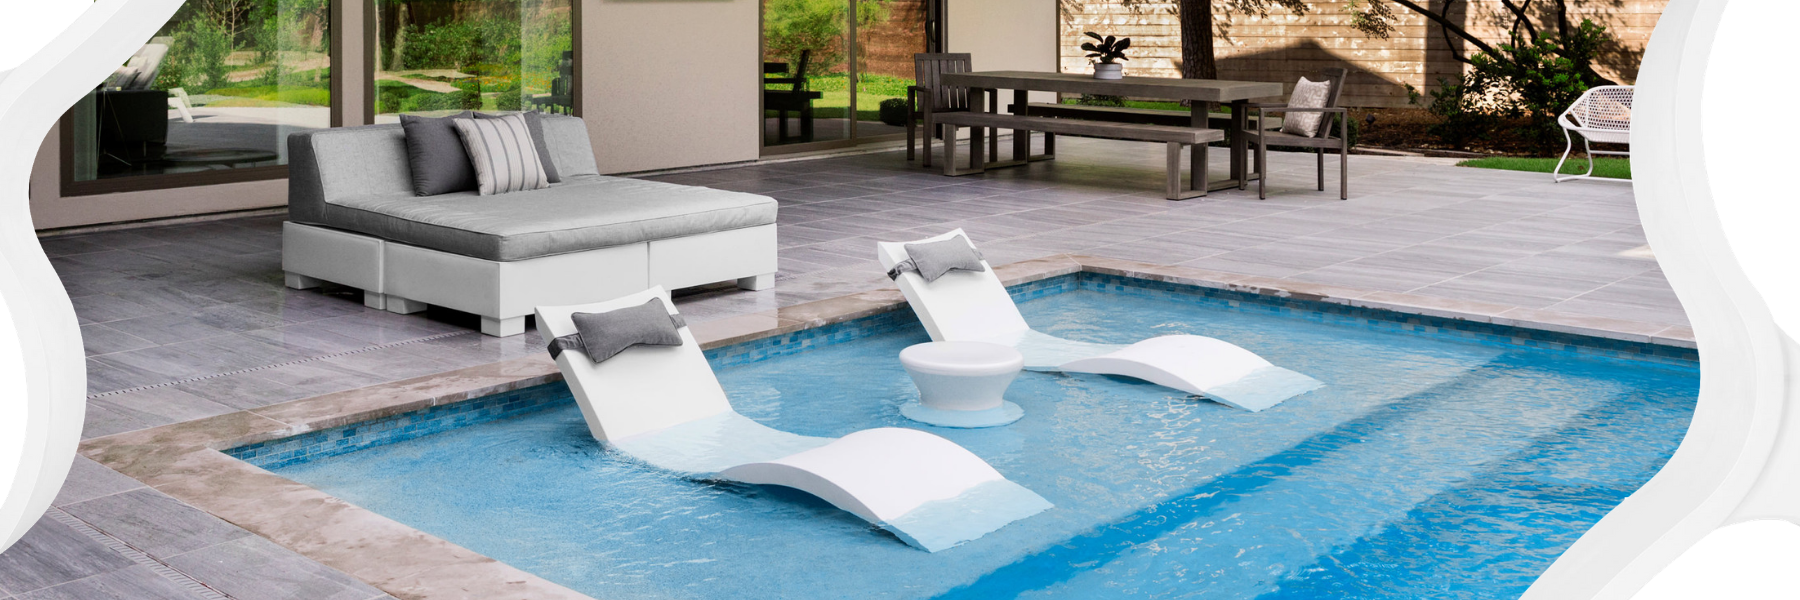 signature-chaise-pair by-ledge-lounger